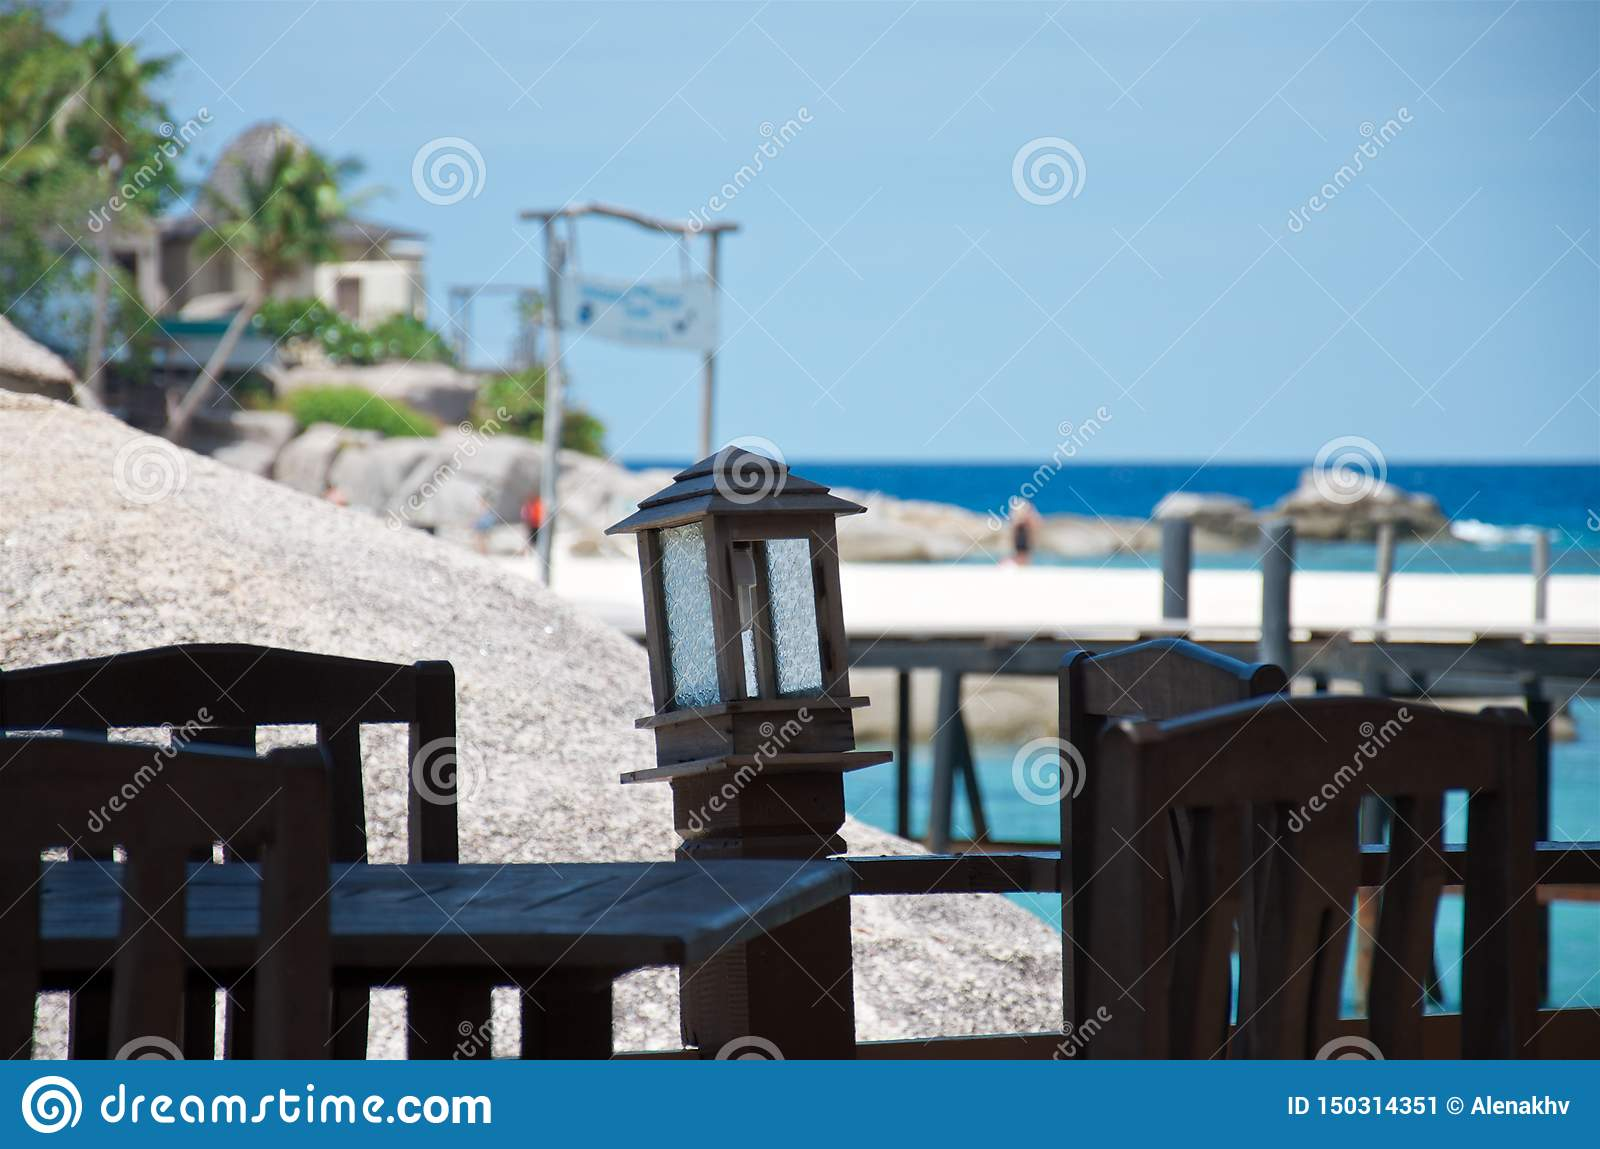 Empty table and chairs in a tropical beach restaurant